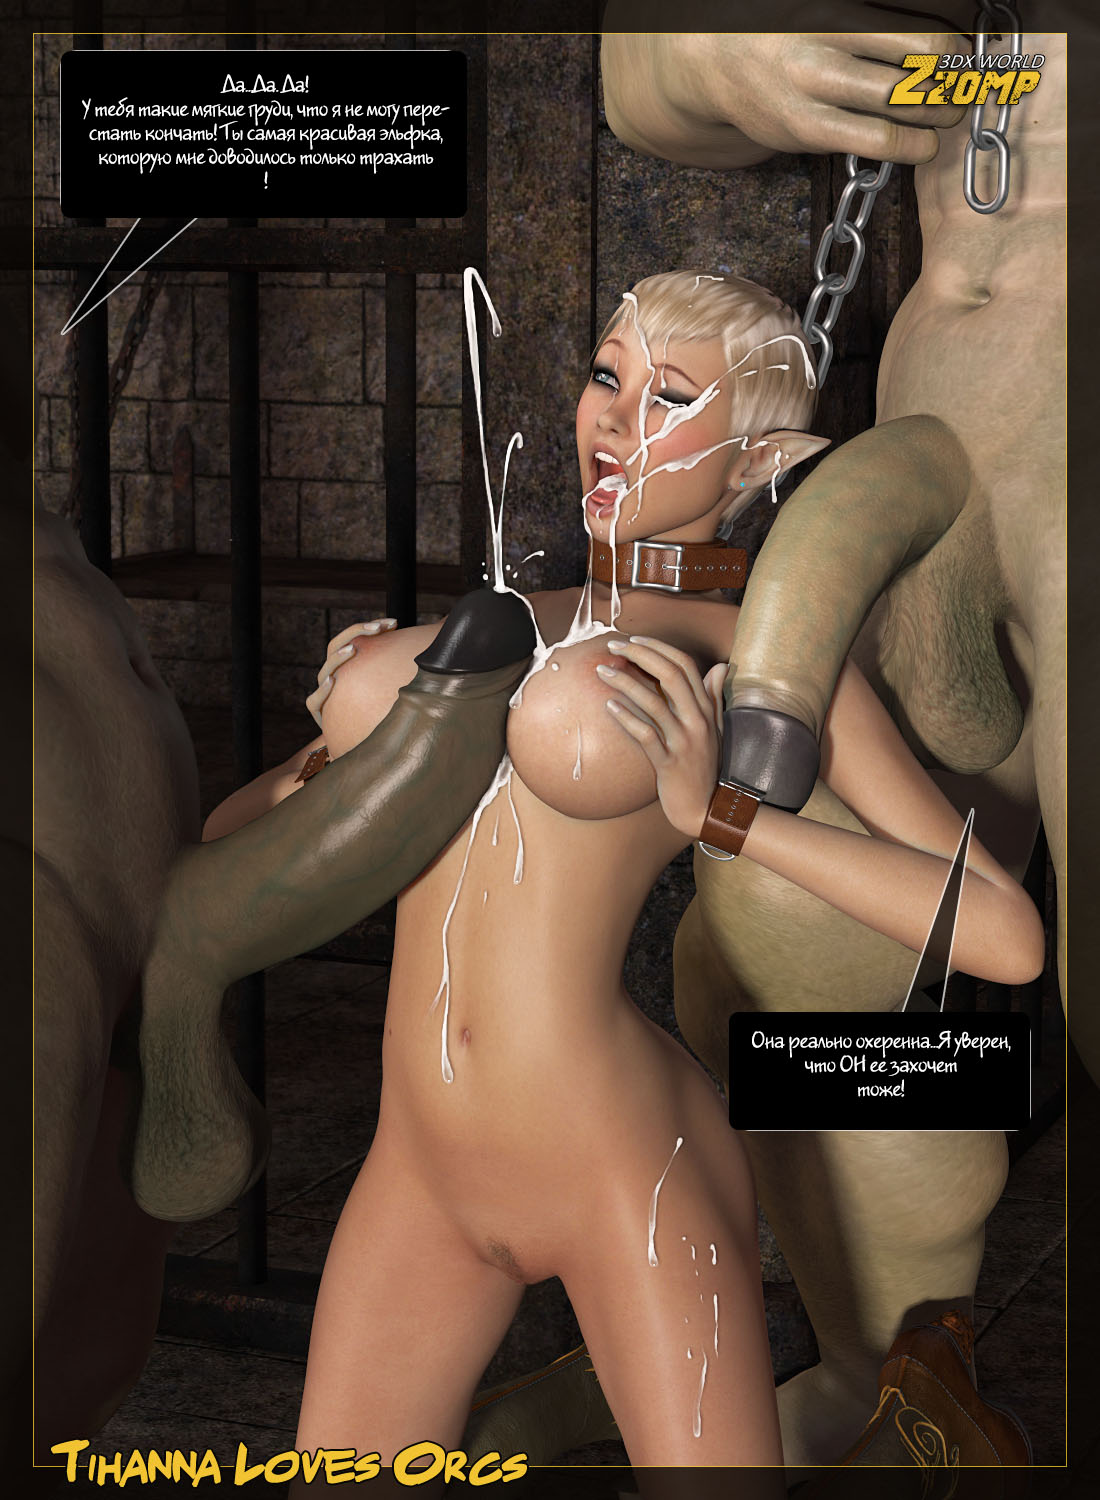 Hentai blonde fucked by orcs erotica comic